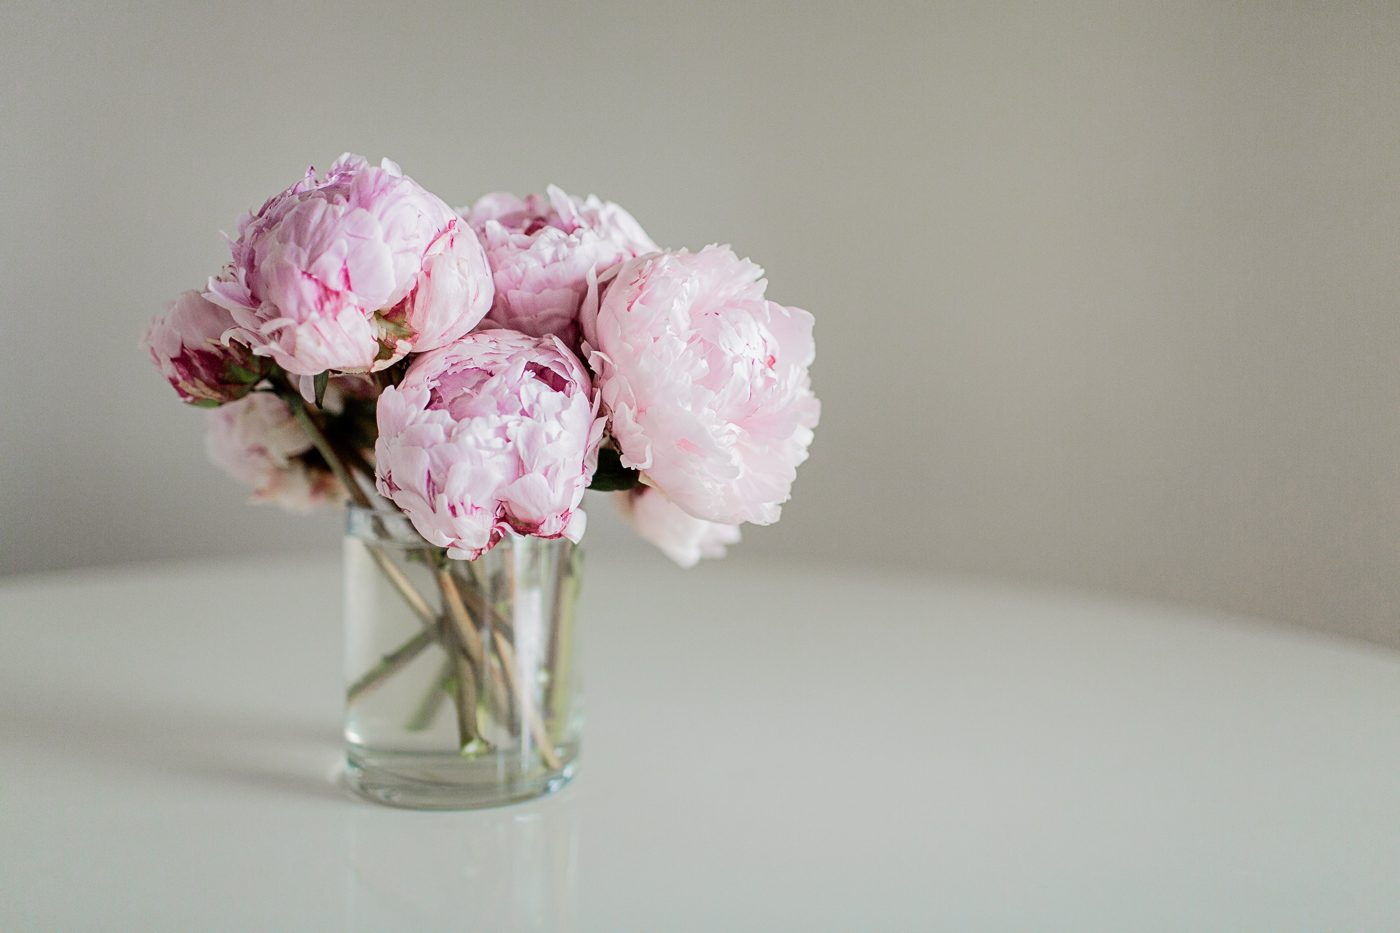 Pinkpeonyhome - Interiors | Lifestyle | Beauty